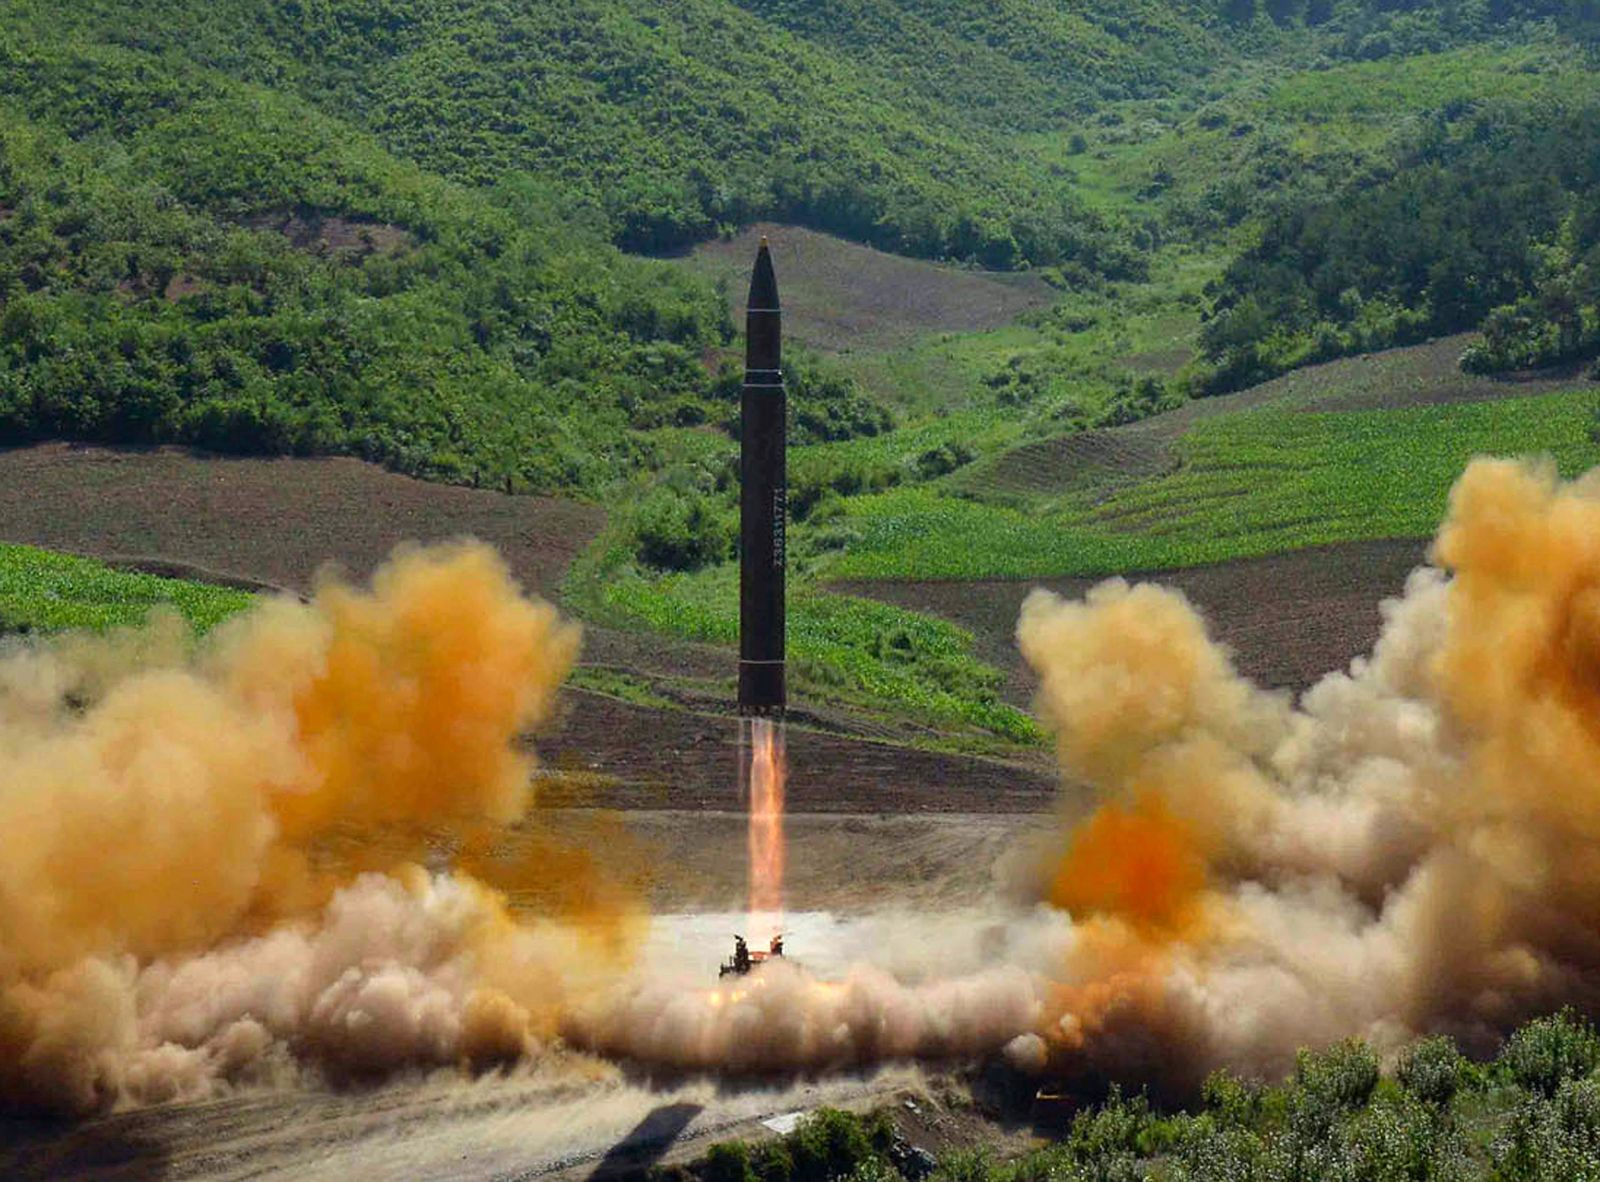 FILE - This file photo distributed July 4, 2017, by the North Korean government shows what was said to be the launch of a Hwasong-14 intercontinental ballistic missile, ICBM, in North Korea's northwest. (Korean Central News Agency/Korea News Service via AP, File)